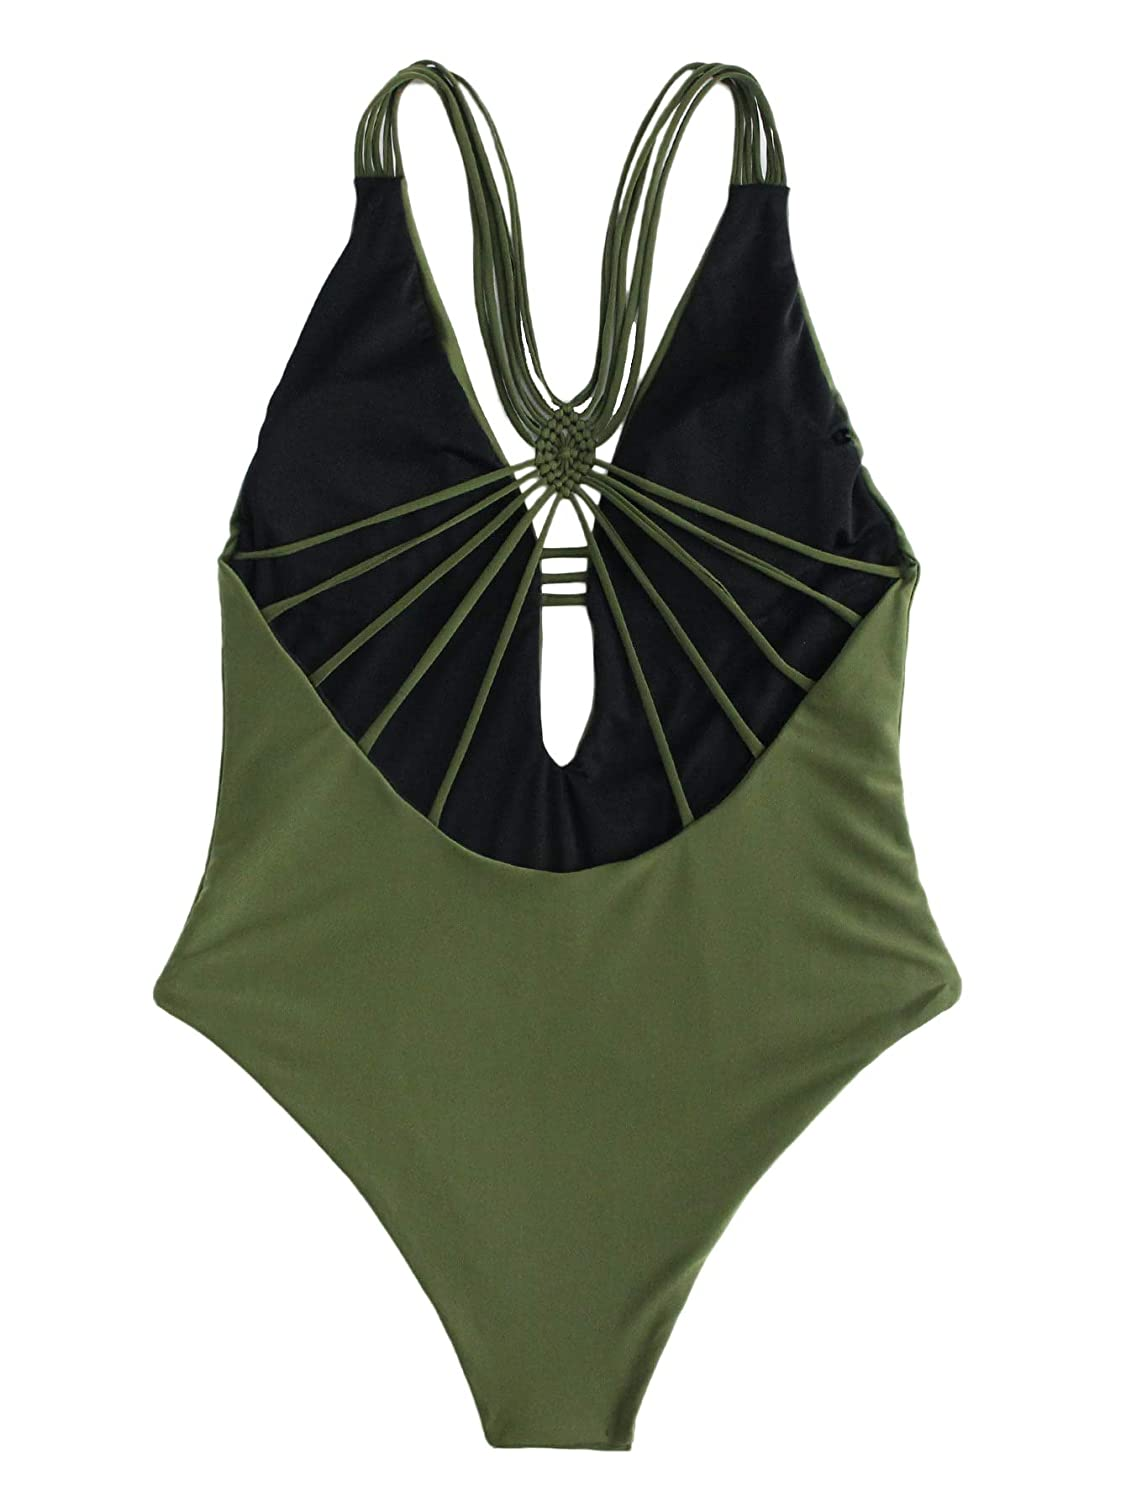 6f1e051a88 SheIn Women's Deep Plunge Strappy One Piece Swimsuits Bathing Suits  Monokinis at Amazon Women's Clothing store: